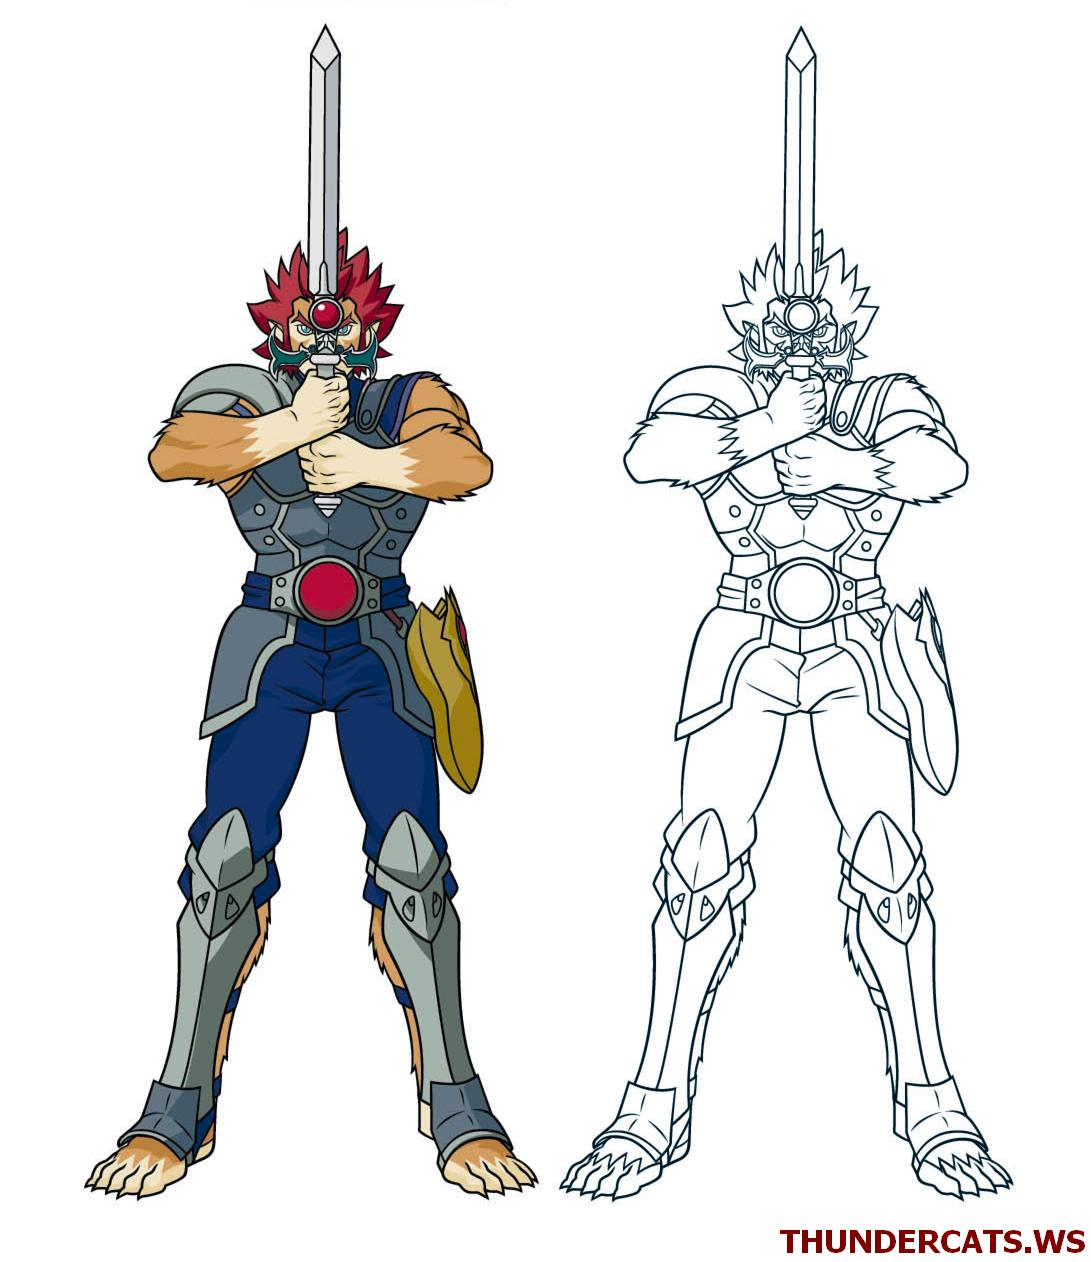 thundercats pp 9 lion o sword - Thunder Cats Coloring Book Pages